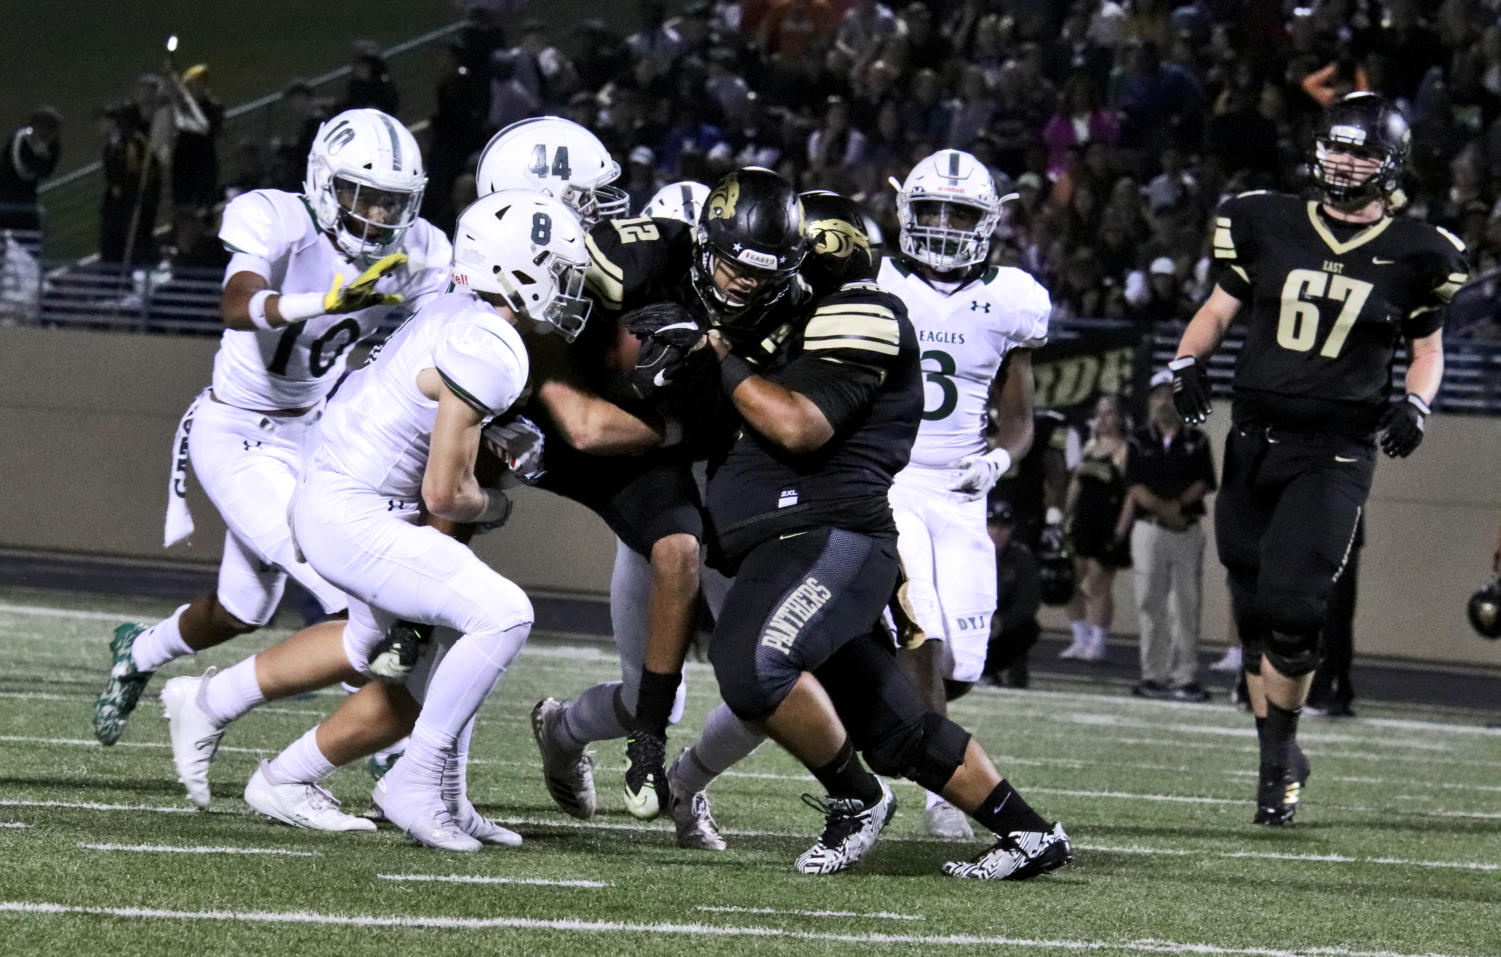 Prosper's defense looks to bring down Plano East wide receiver Braylon Henderson, No. 12. Henderson tallied 153 yards and one touchdown. His performance helped Plano Easy past Prosper 26-14.